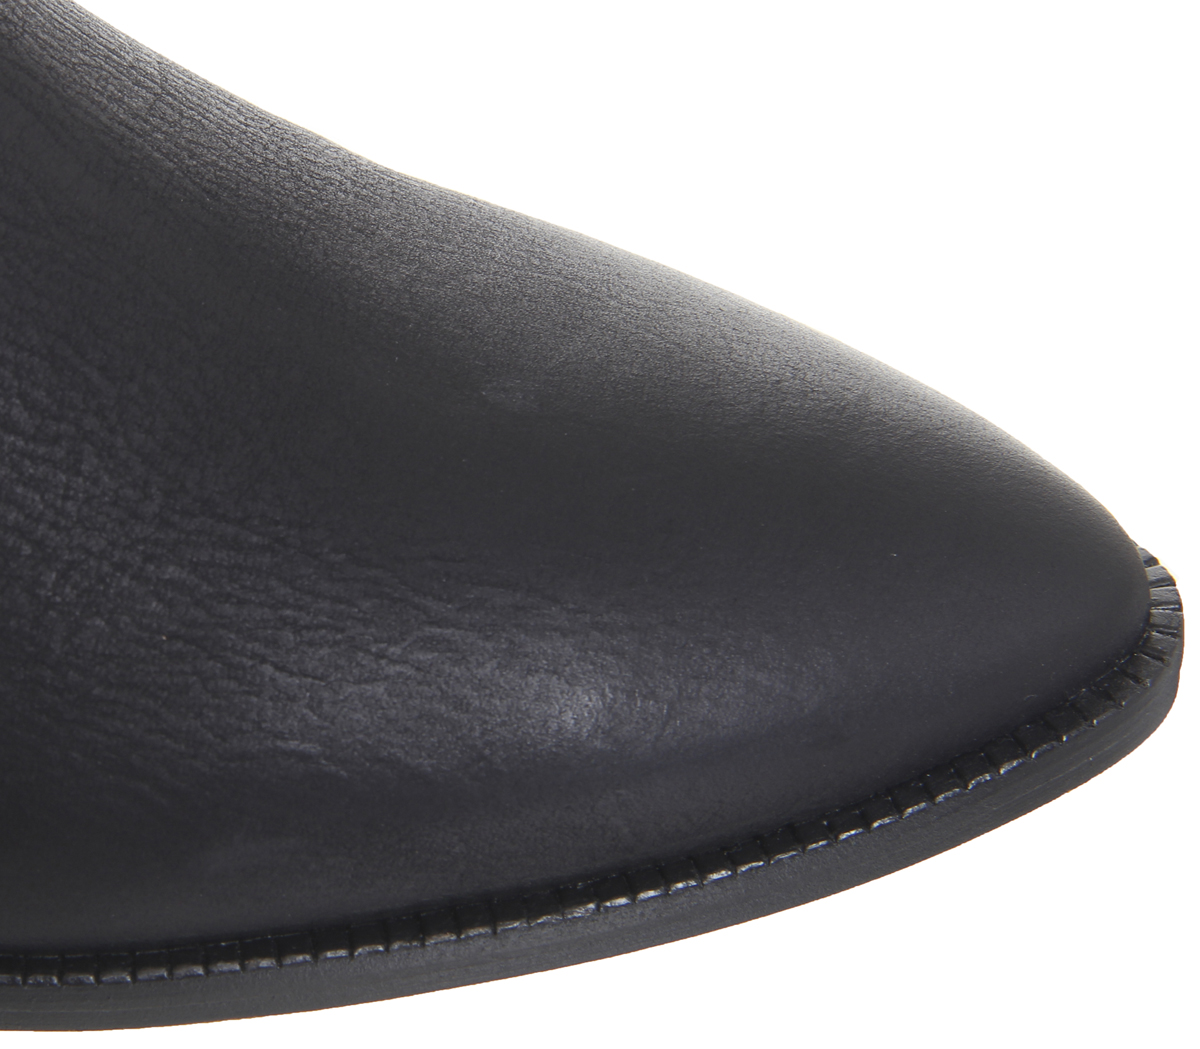 591f10a3398 Details about Womens Office Addition Low Cut Western Boots Black Leather  Boots